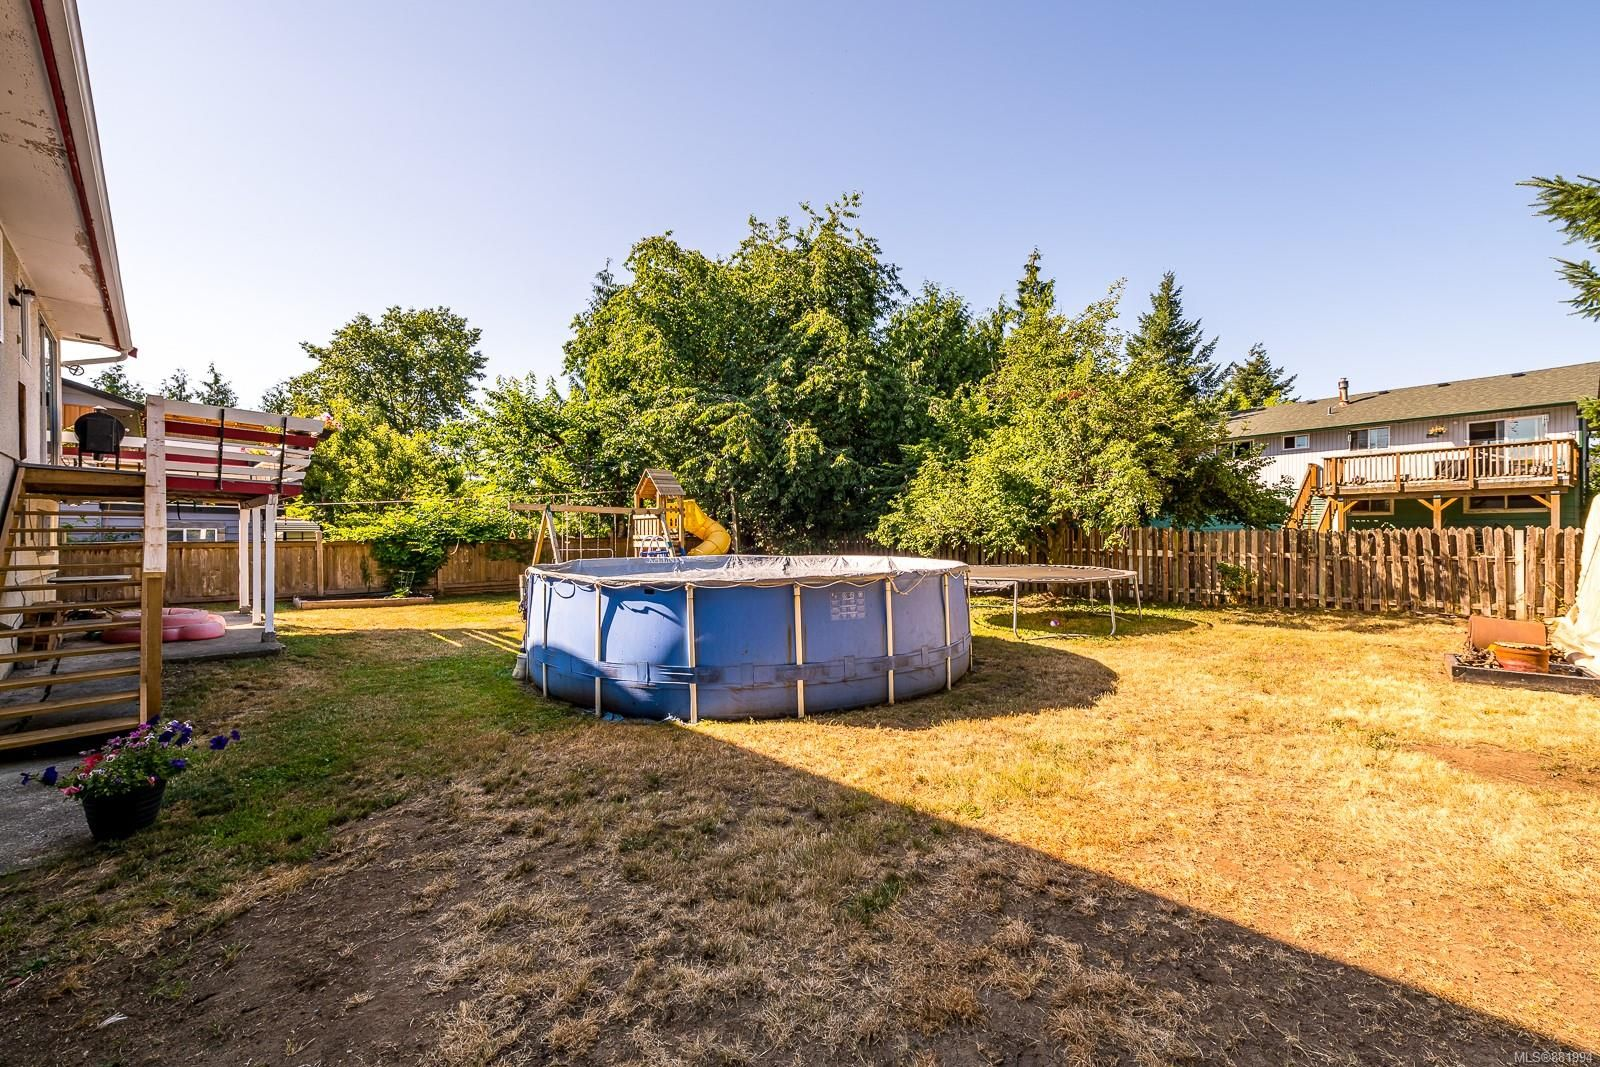 Photo 20: Photos: 1935 Fitzgerald Ave in : CV Courtenay City House for sale (Comox Valley)  : MLS®# 881994